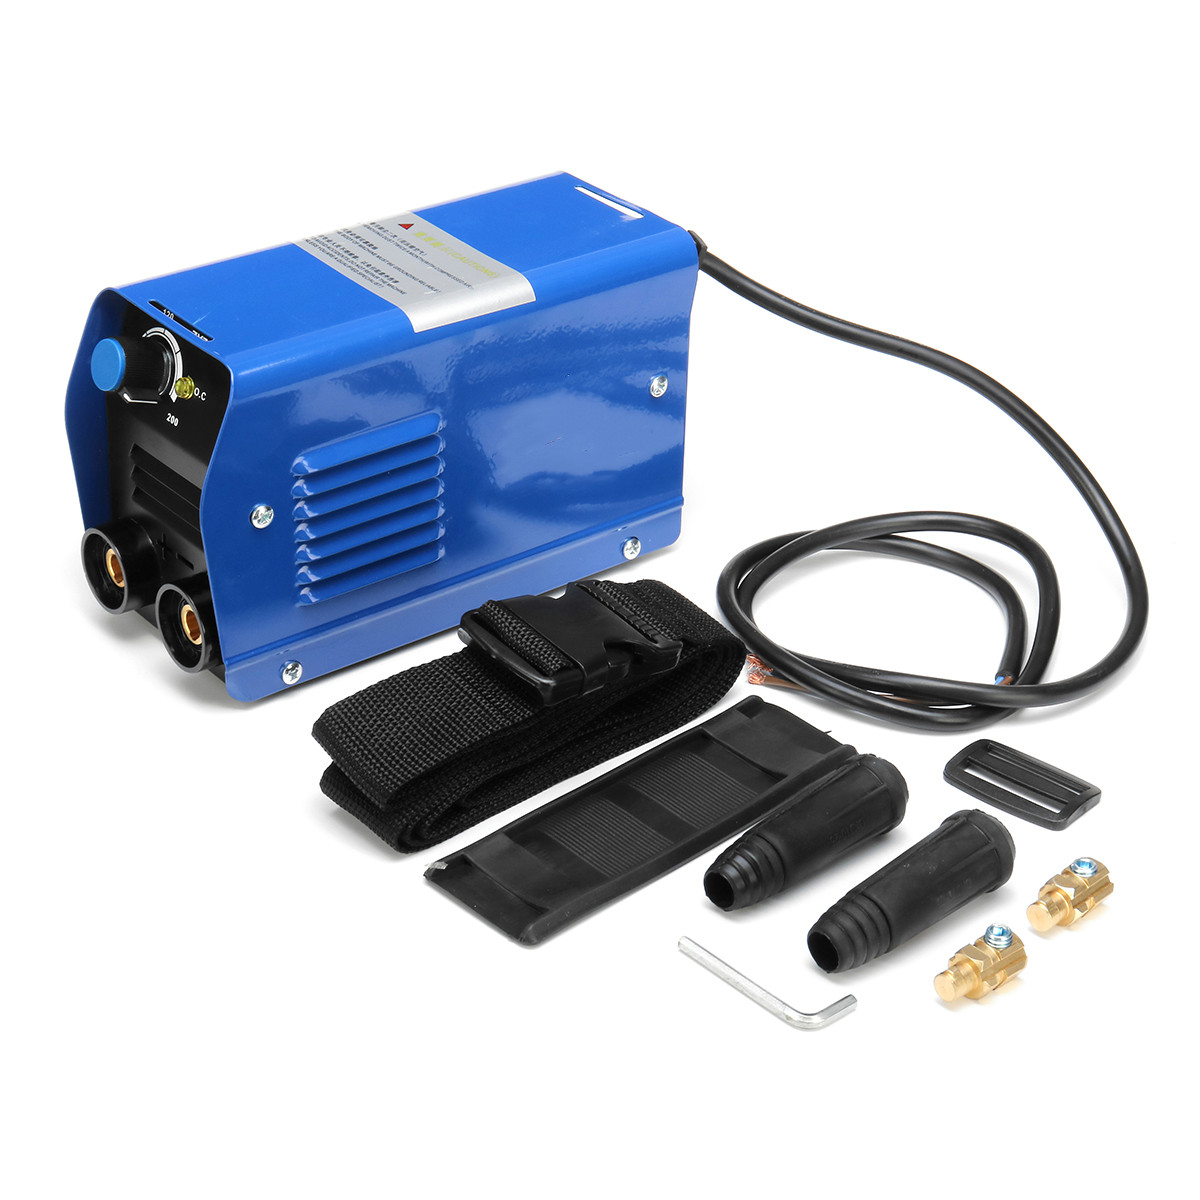 For free 220V Mini Electric Welding Machine Portable Solder 20-200A Inverter Soldering Tool ARC Welding Working